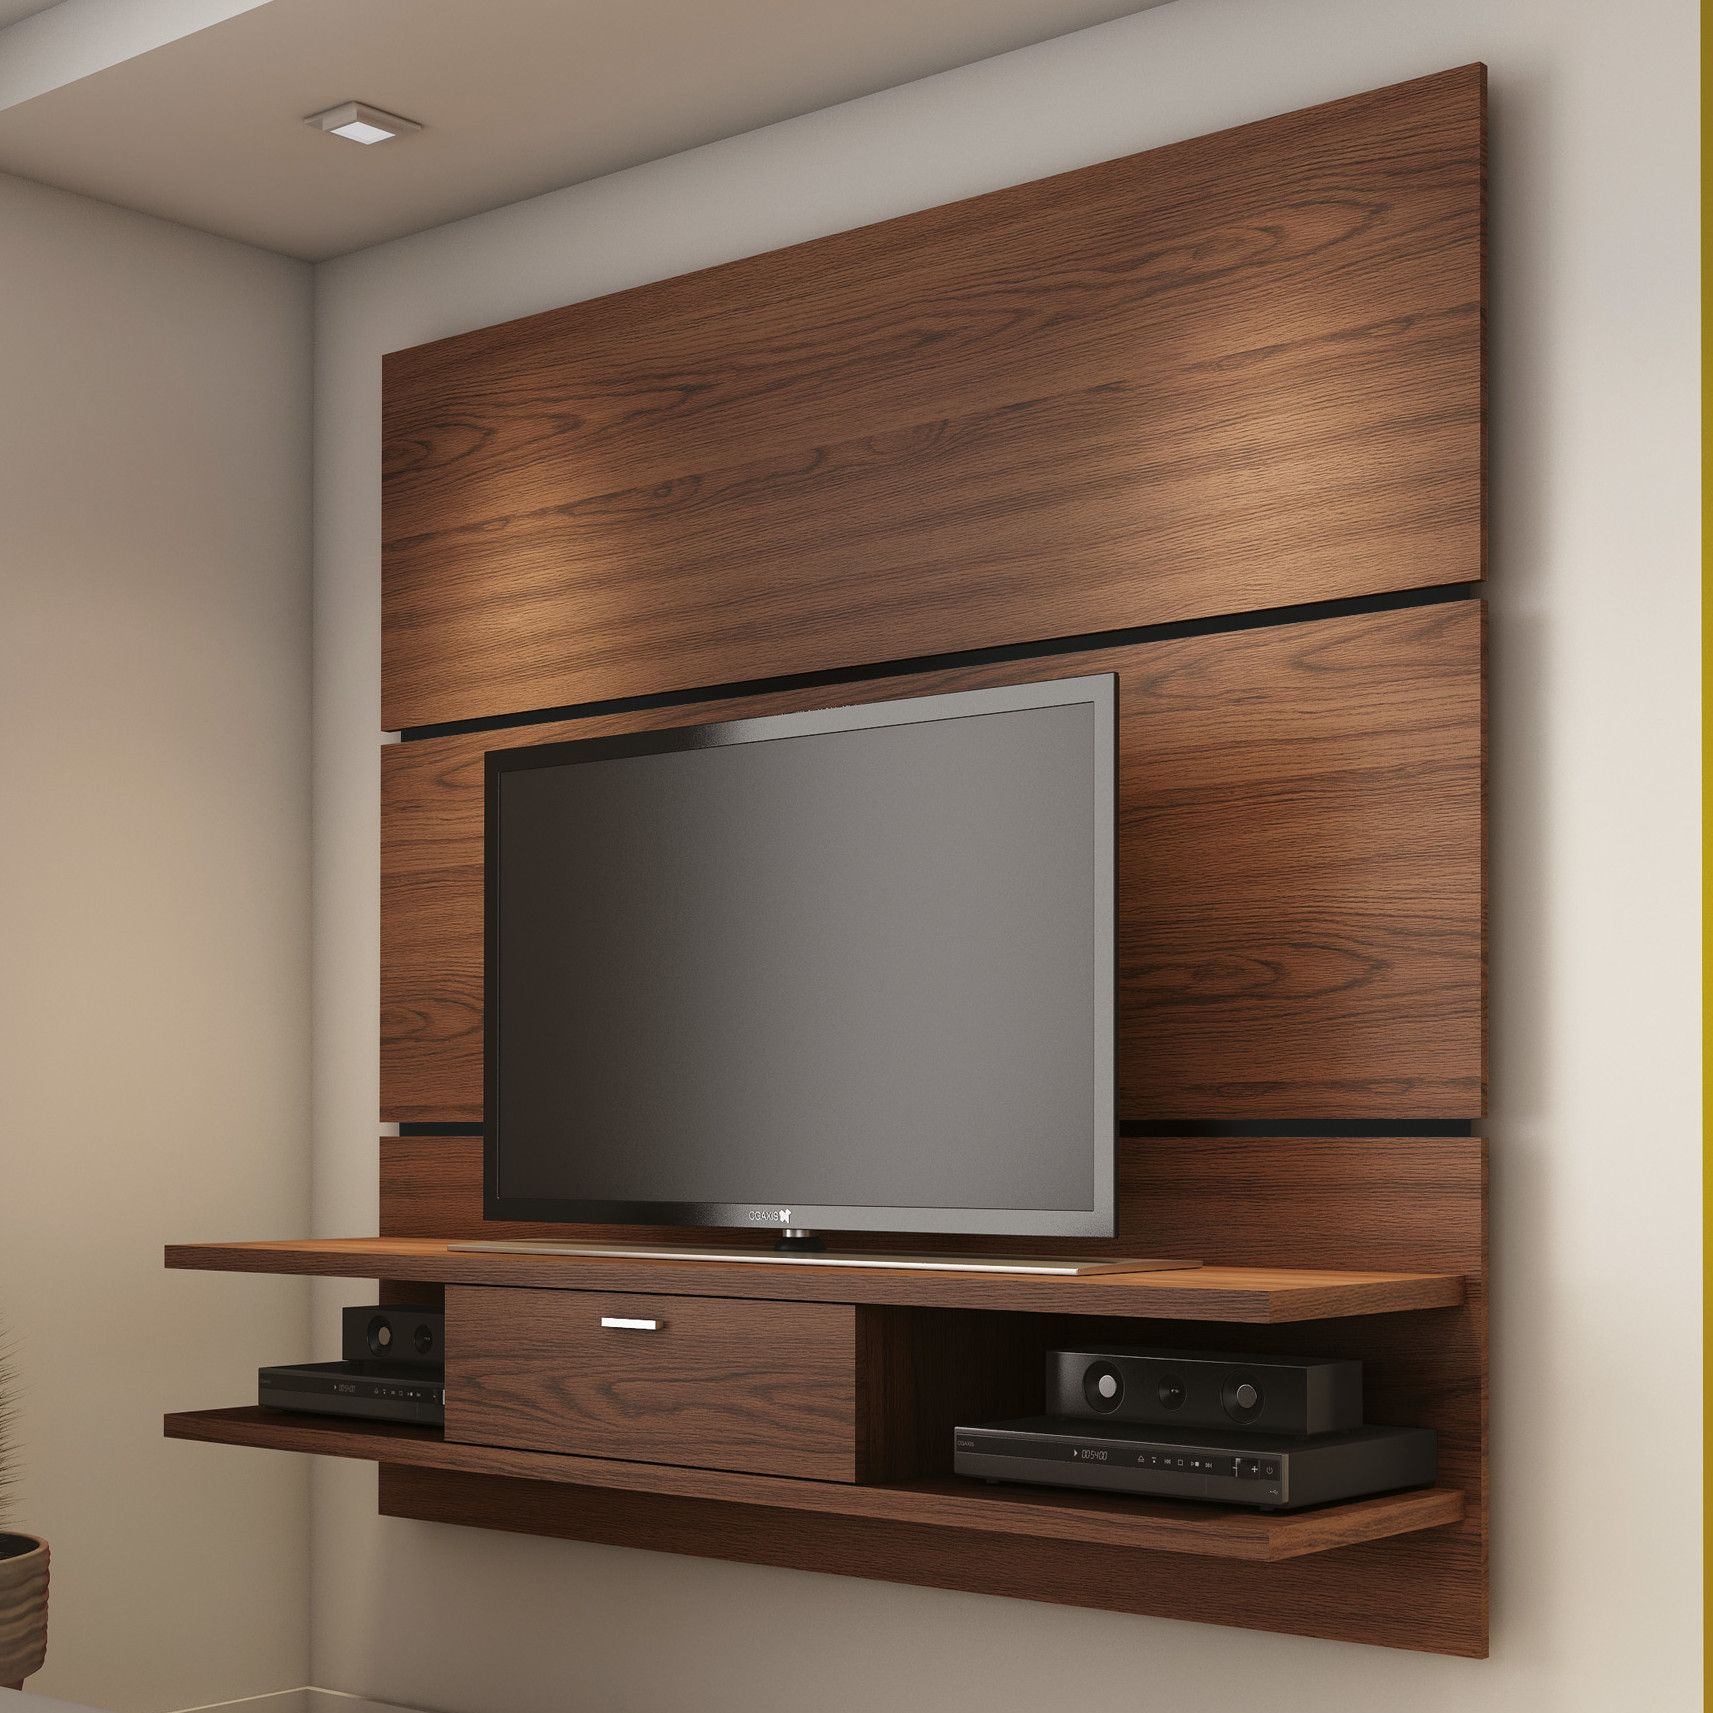 Small Bedroom Tv Unit Wooden Wall Mounted Tv Stand For